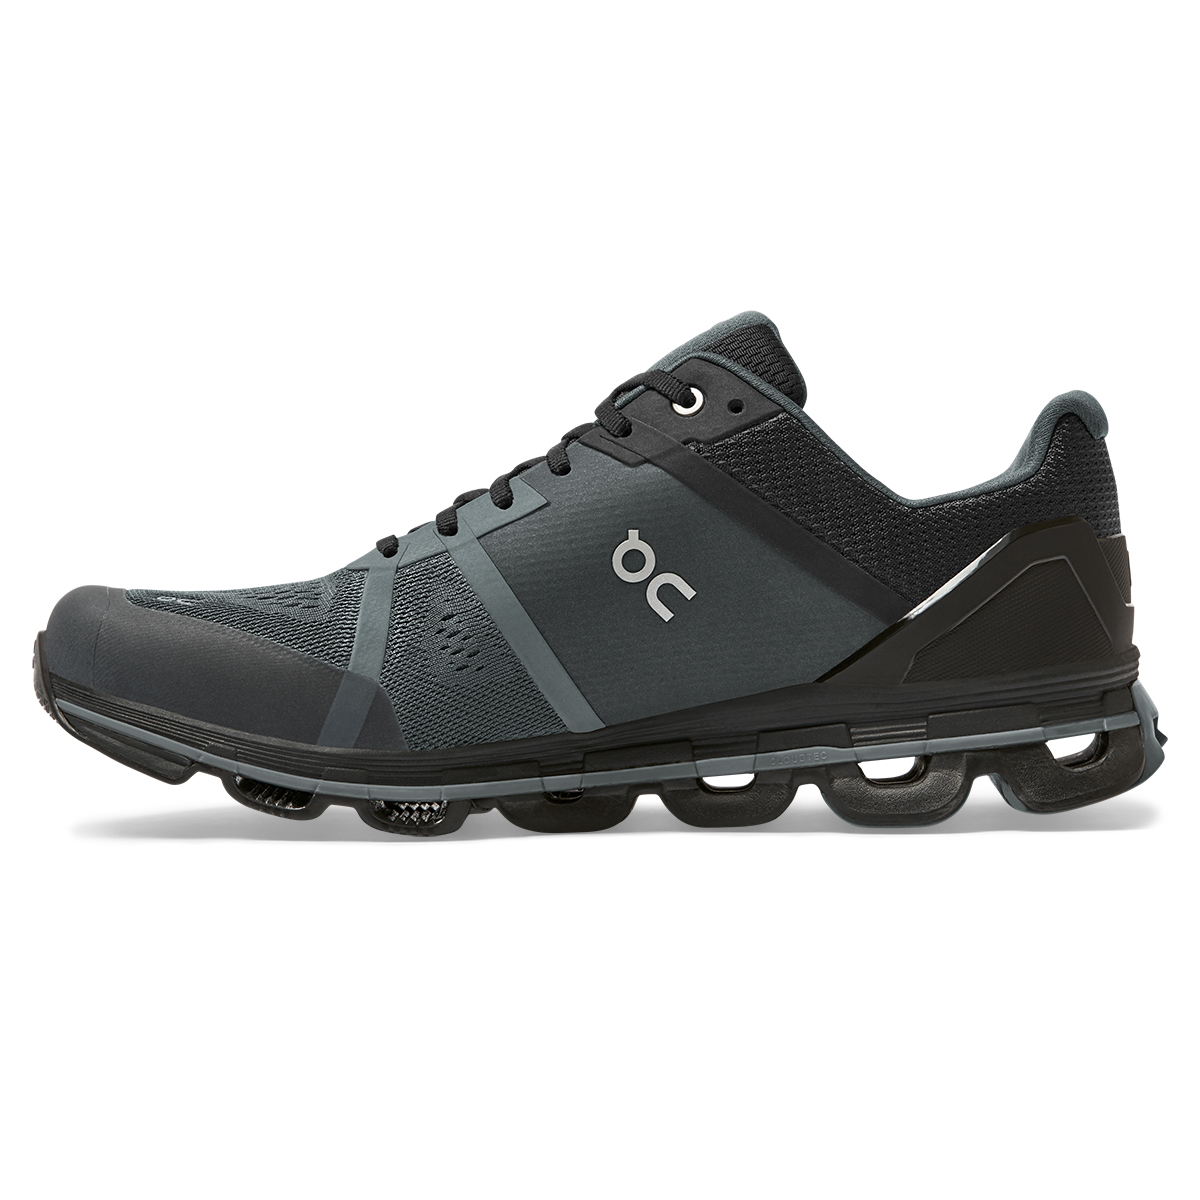 Women's On Cloudace Running Shoe - Color: Graphite/Rock - Size: 5 - Width: Regular, Graphite/Rock, large, image 2